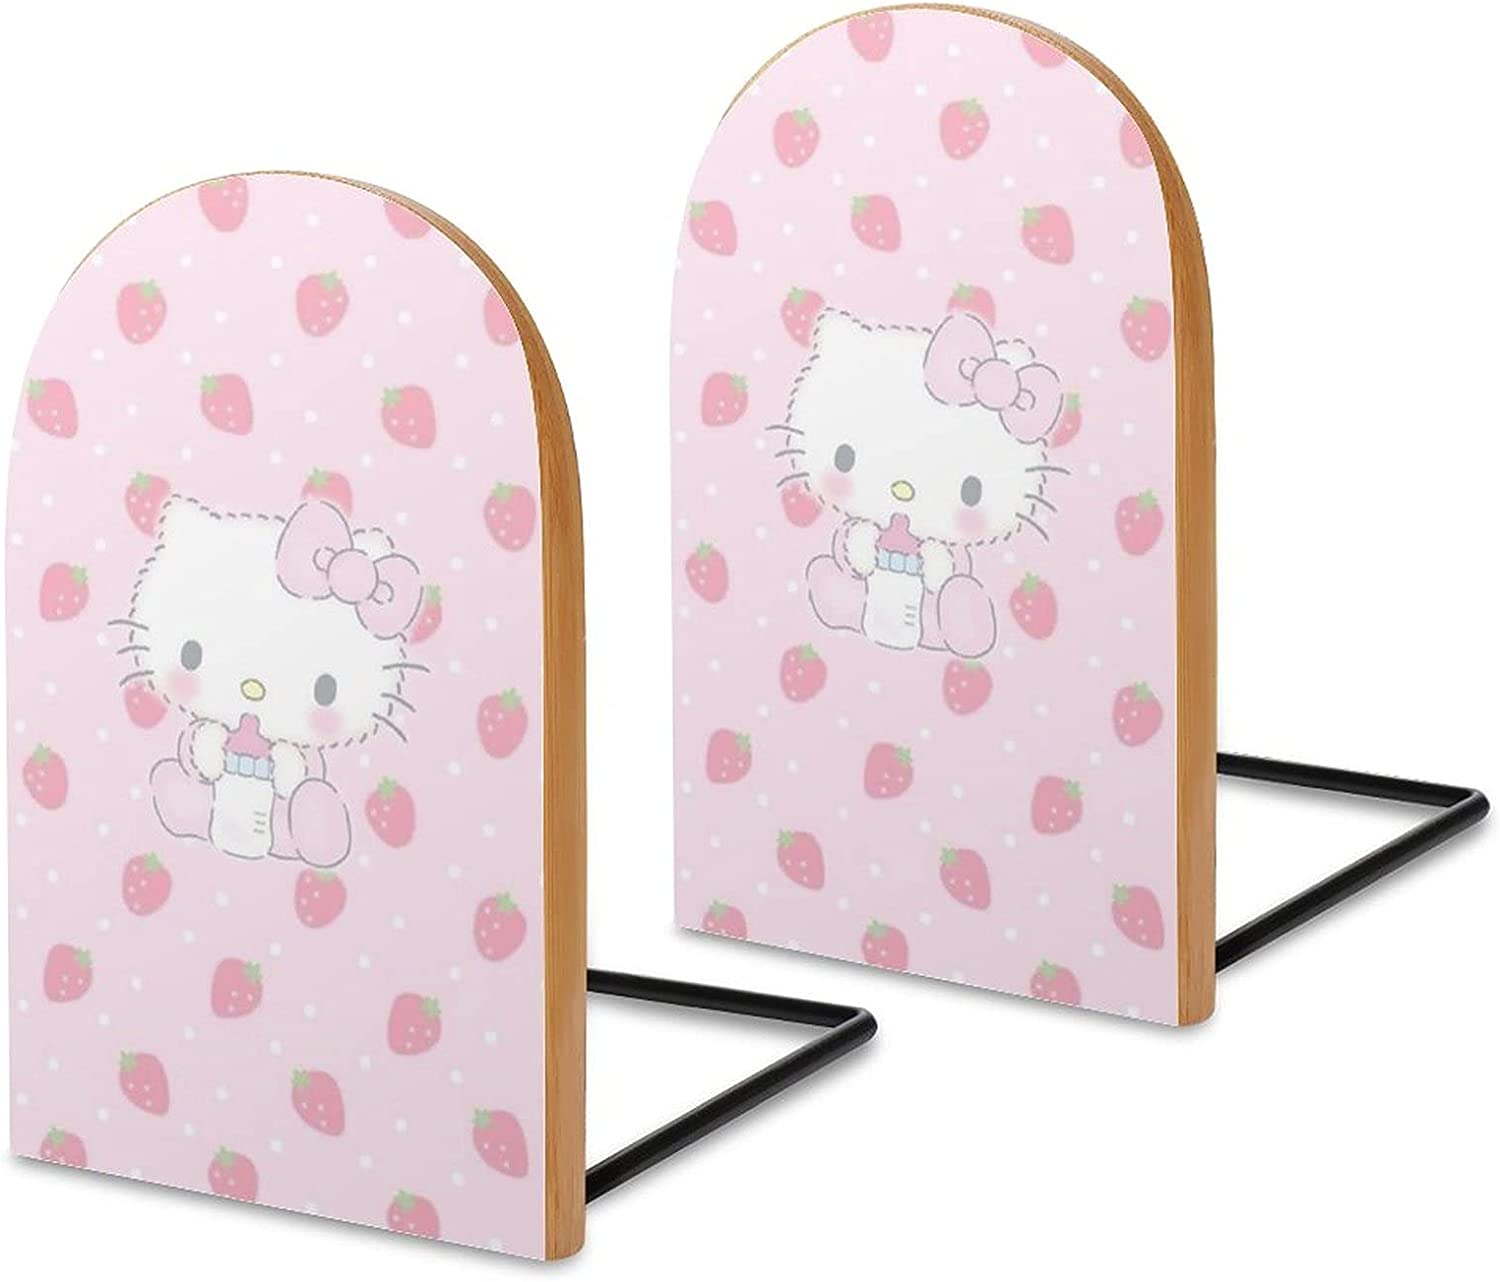 KRISMARIO Rare Hello Kitty Drink Milk 2pcs Bookends M Logs Sales for sale Heavy Wood